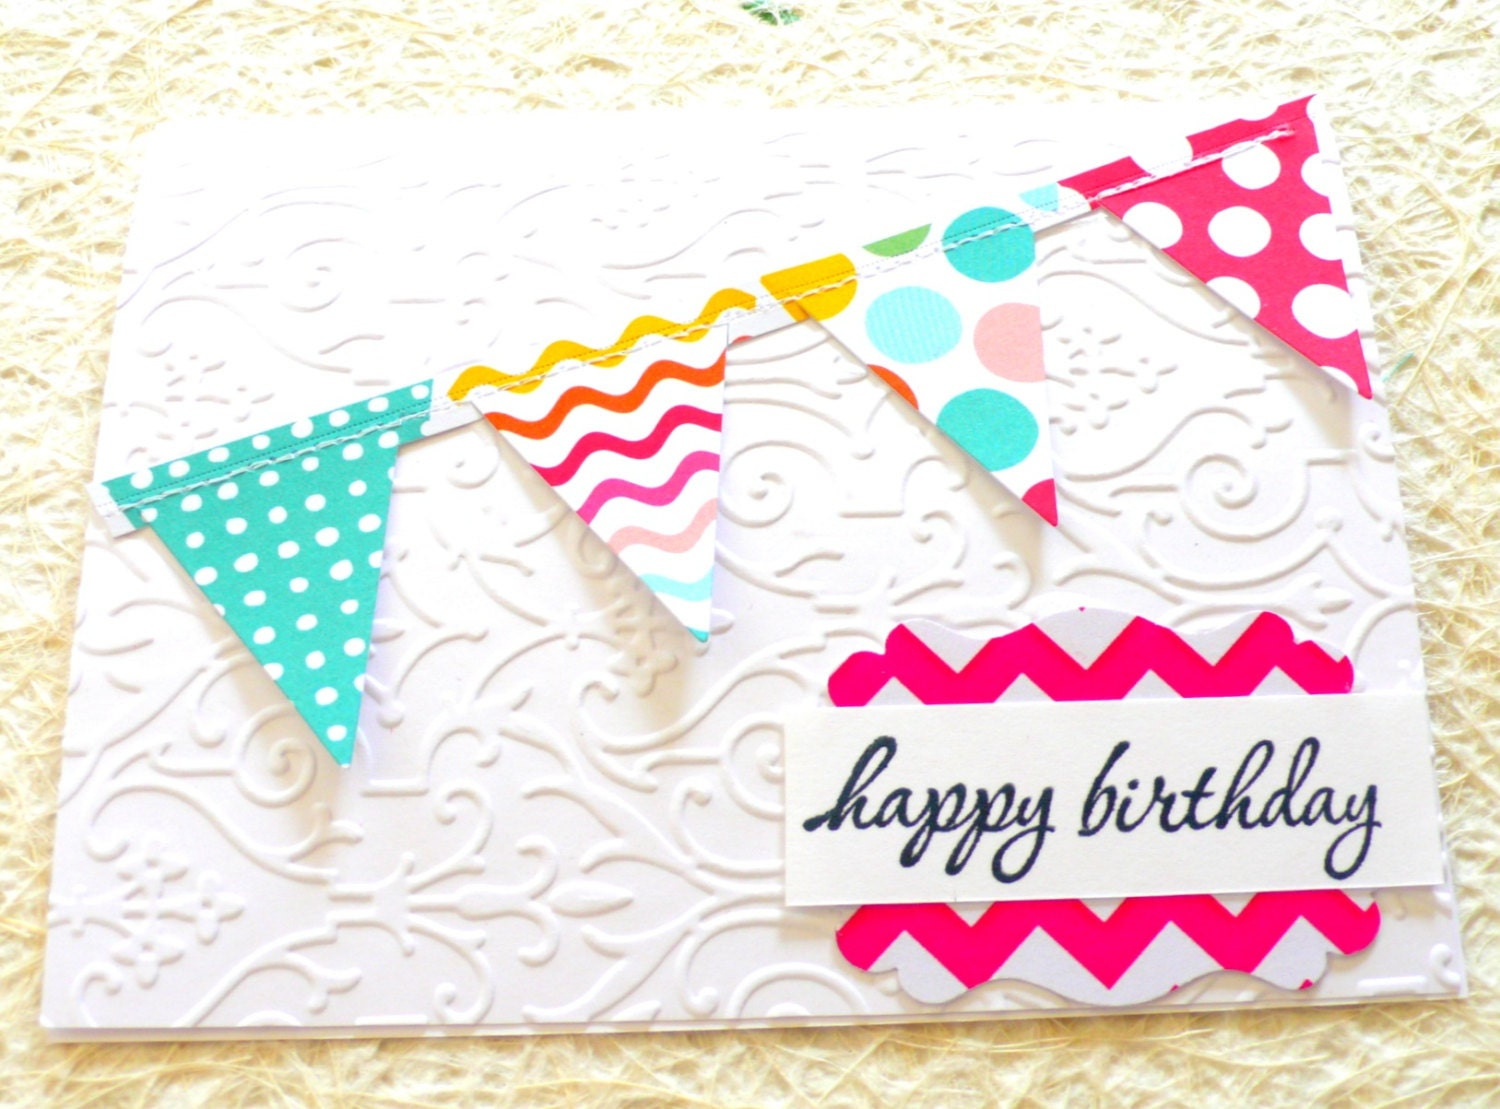 Friend Birthday Card Best Friend birthday card Happy – A Birthday Card for a Best Friend